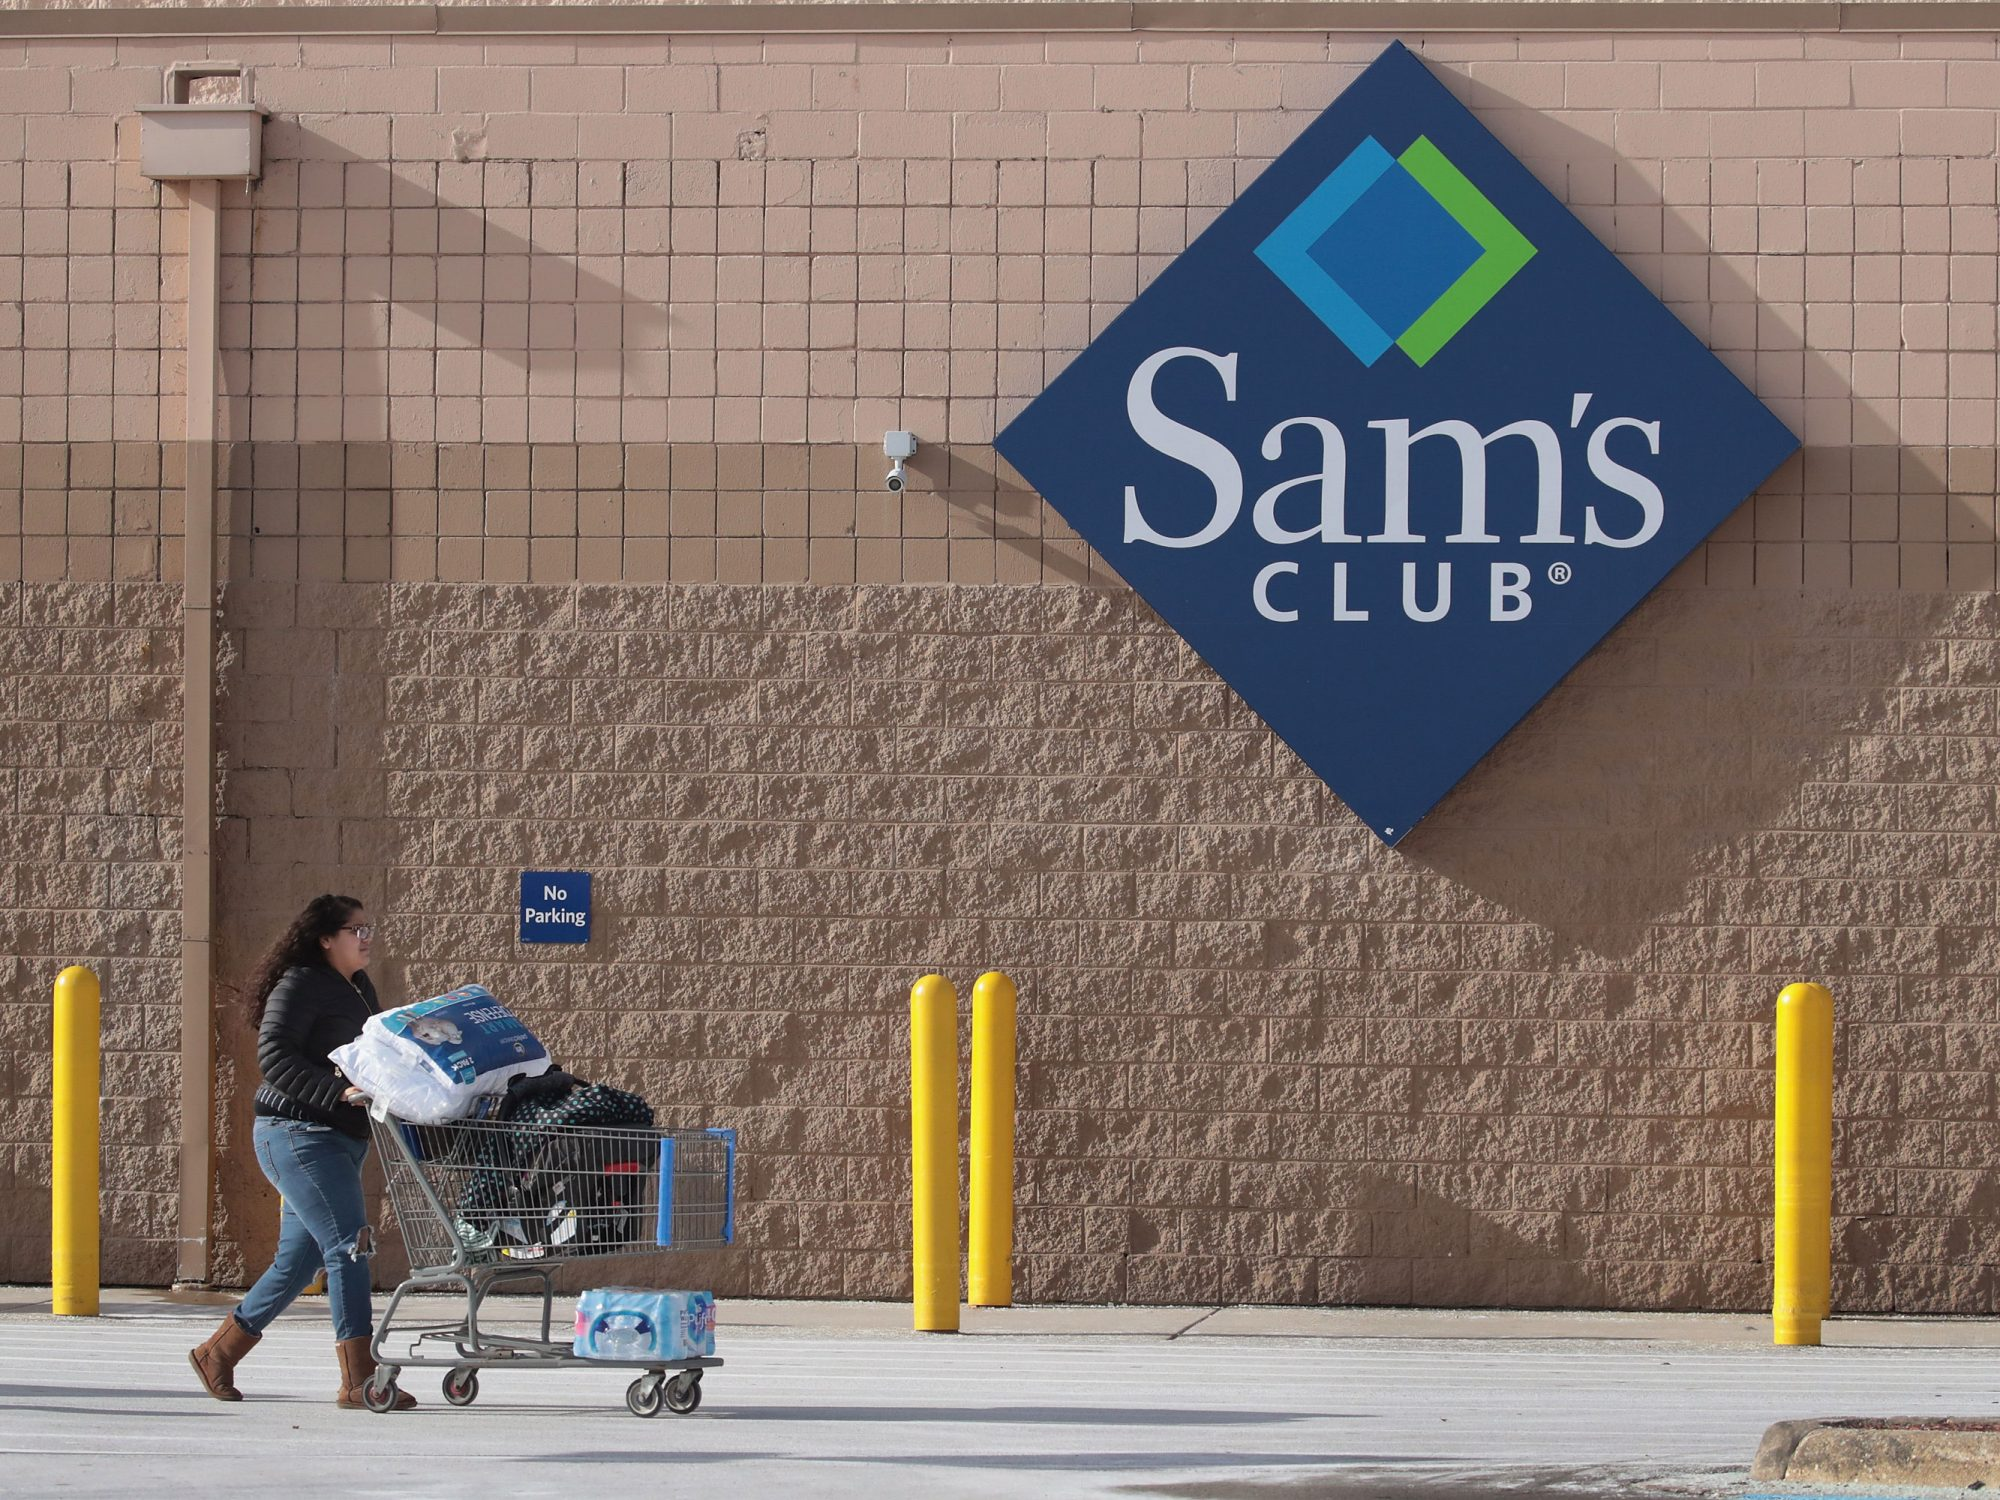 Sam's Club Chicken Recalled After Plastic Pieces Found in Meat